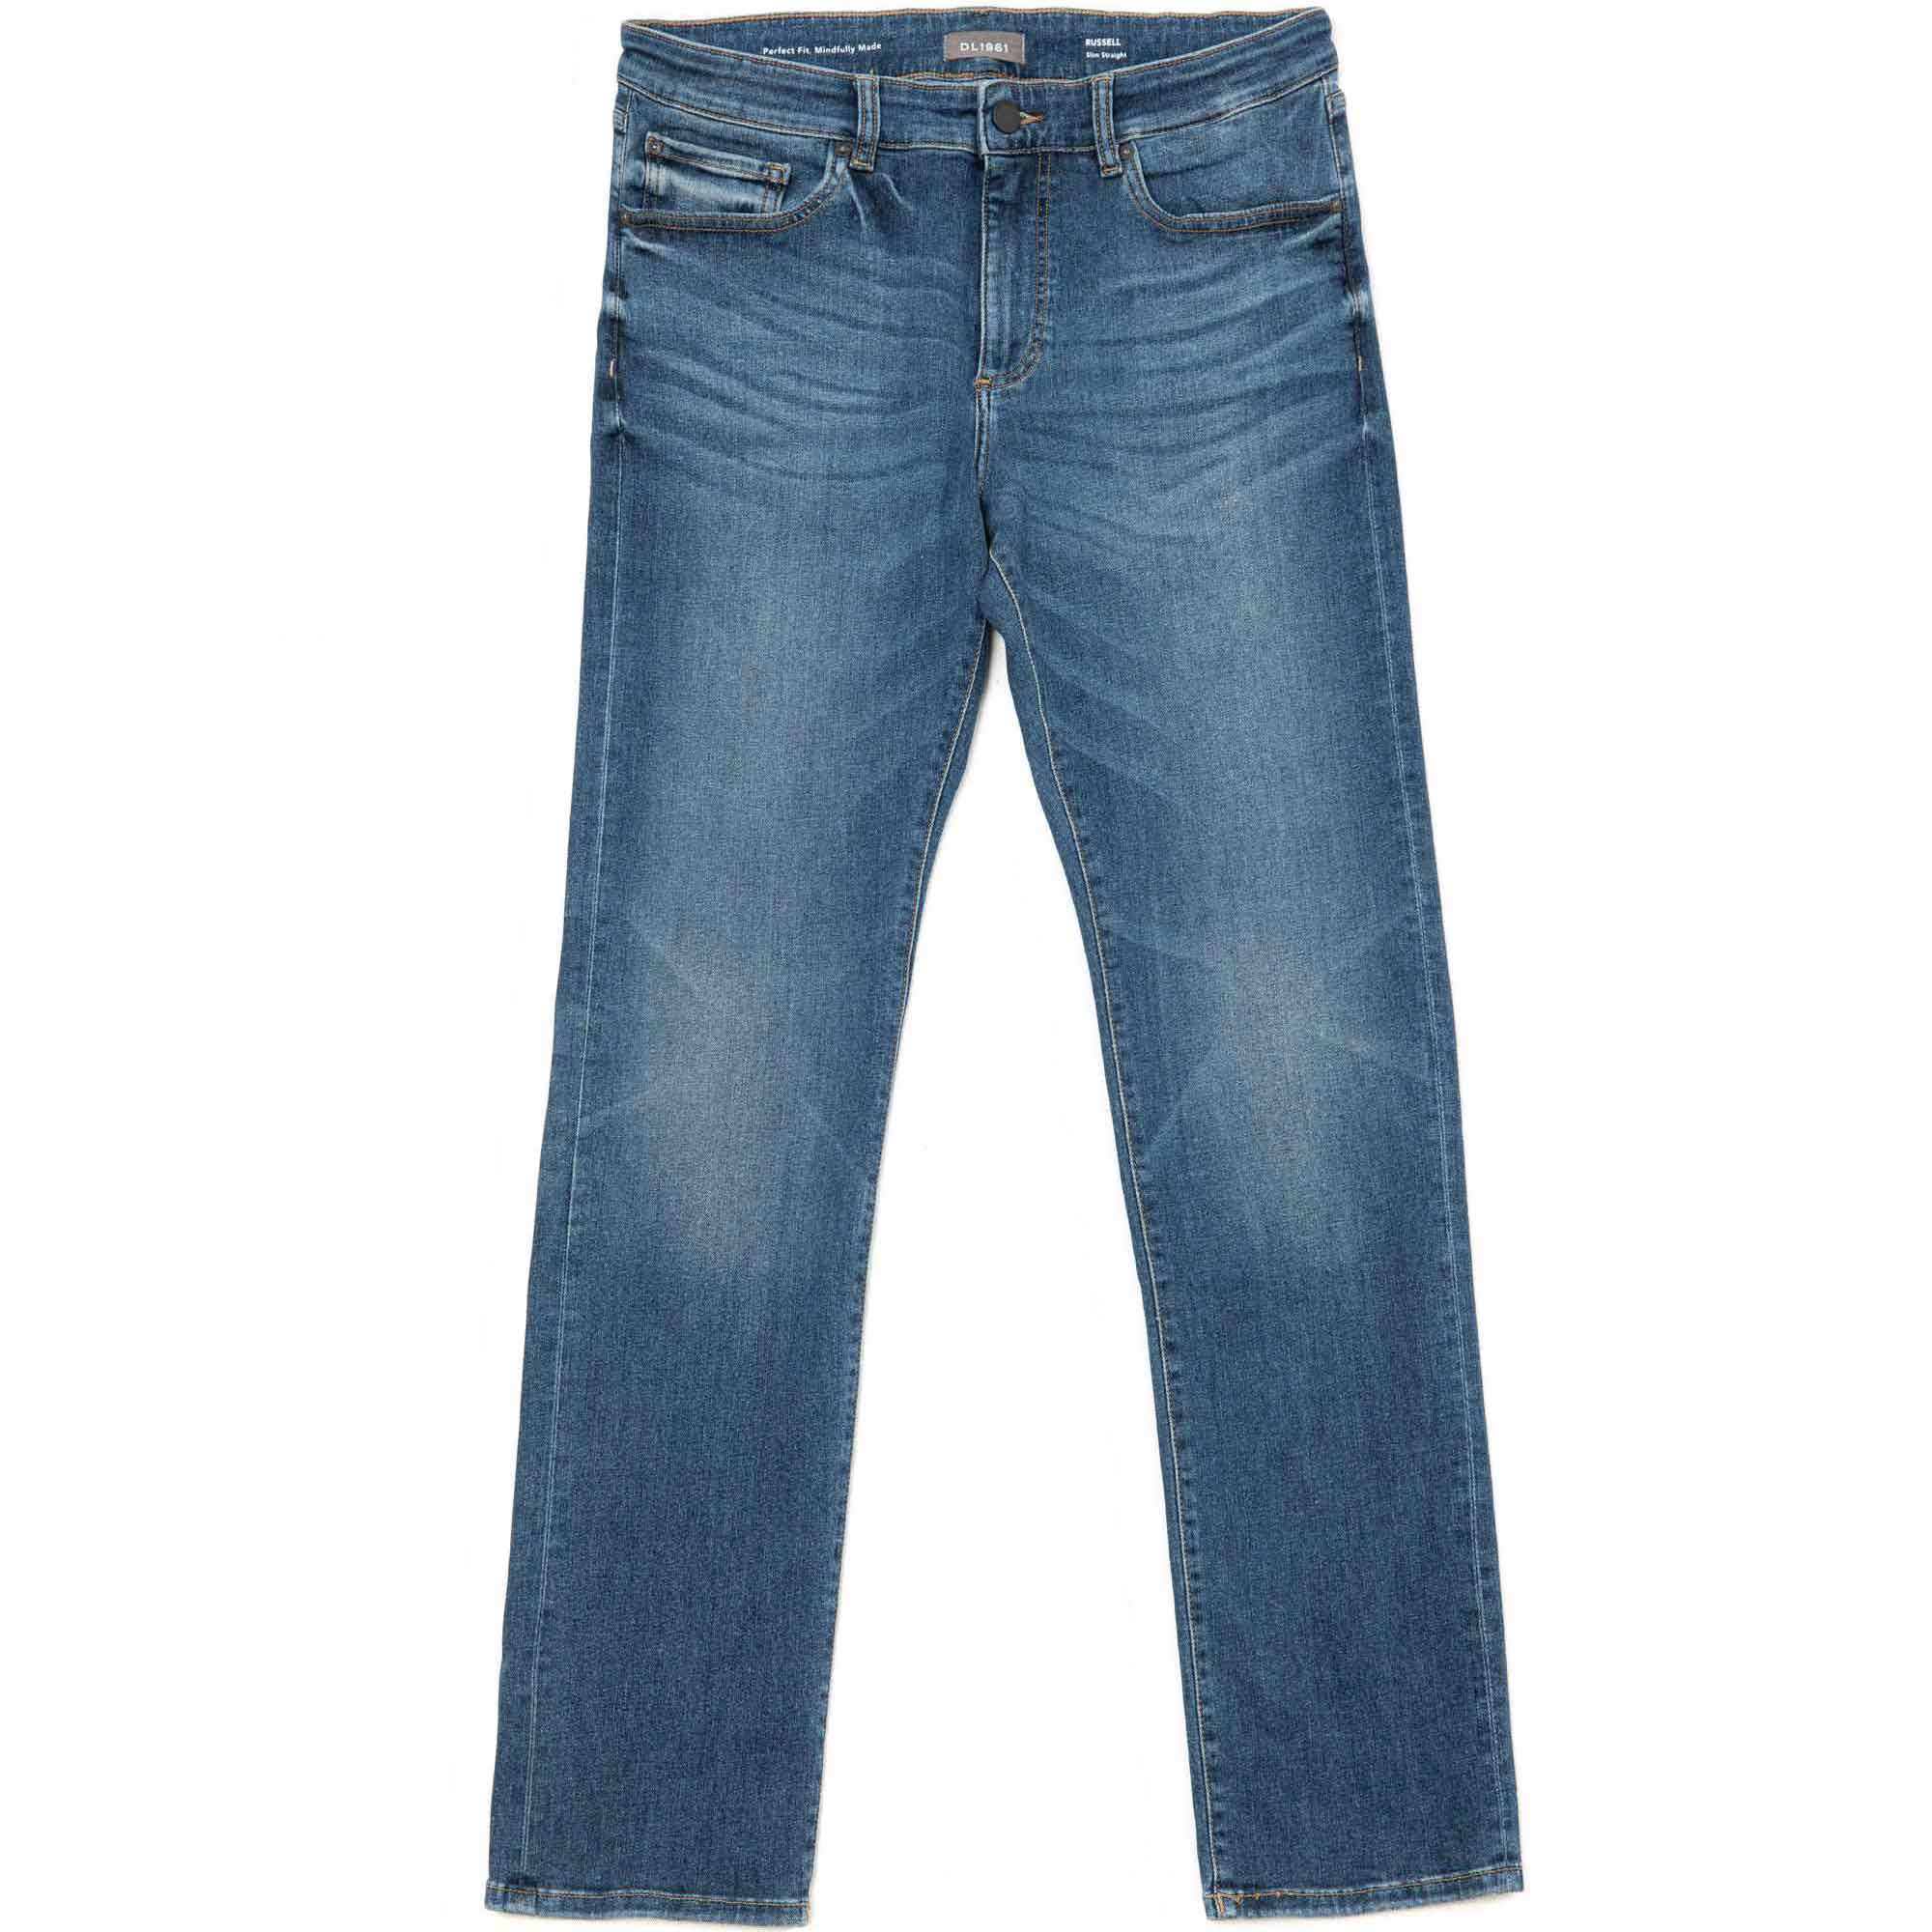 Jeans russell slim straight epithet